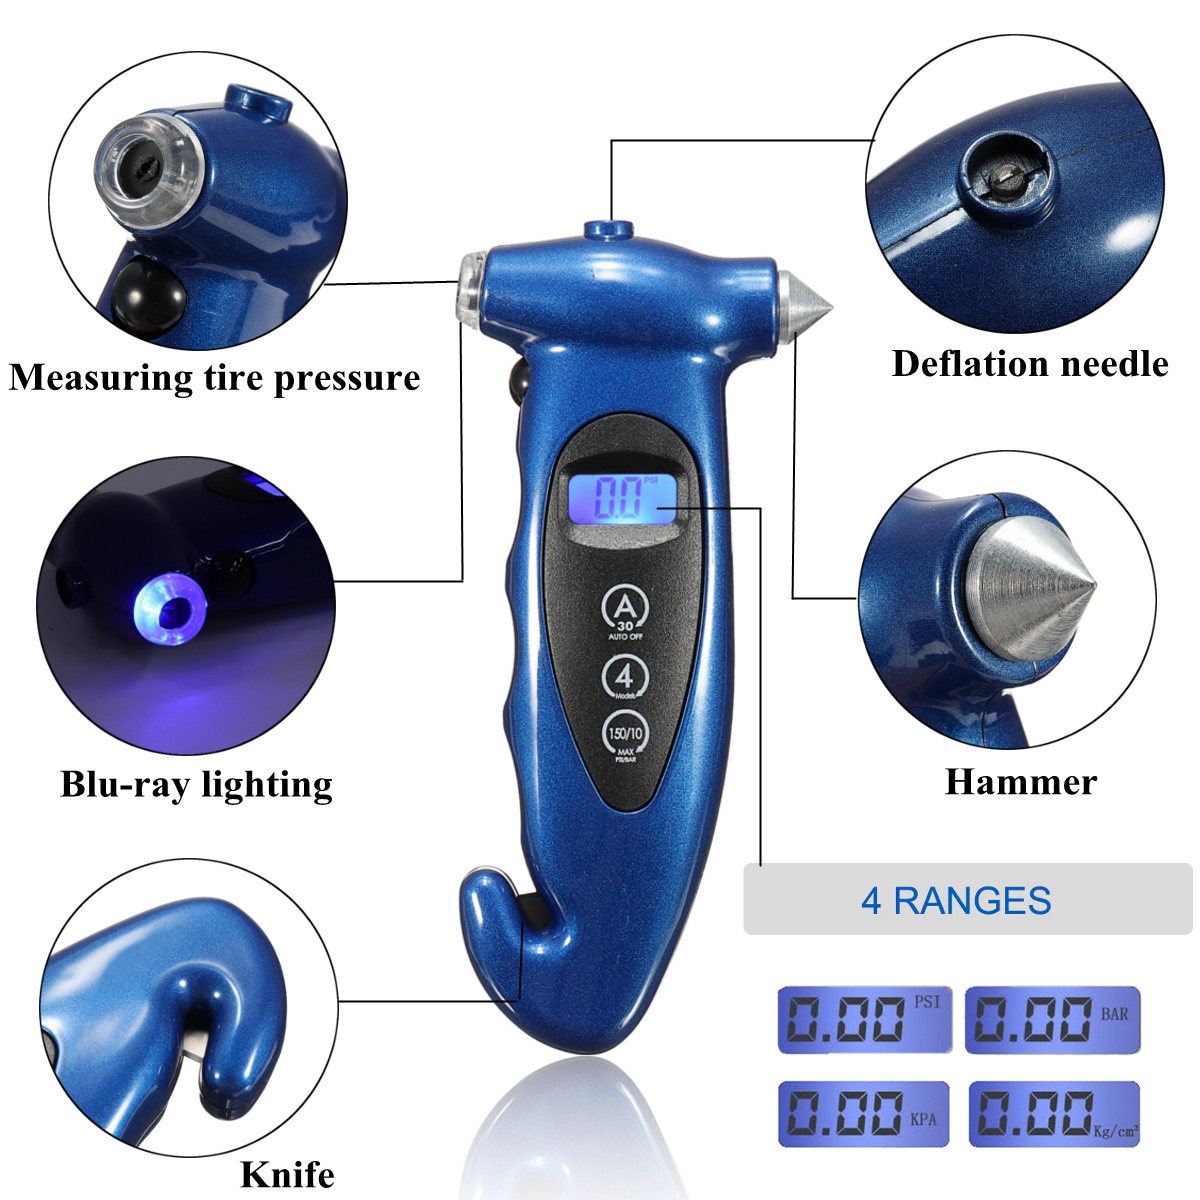 5 in 1 Digital Tire Pressure Gauge Night Lighting Glass Hammer Safety Belt Knife Tire Deflatio LCD for Car Truck Motorcyle